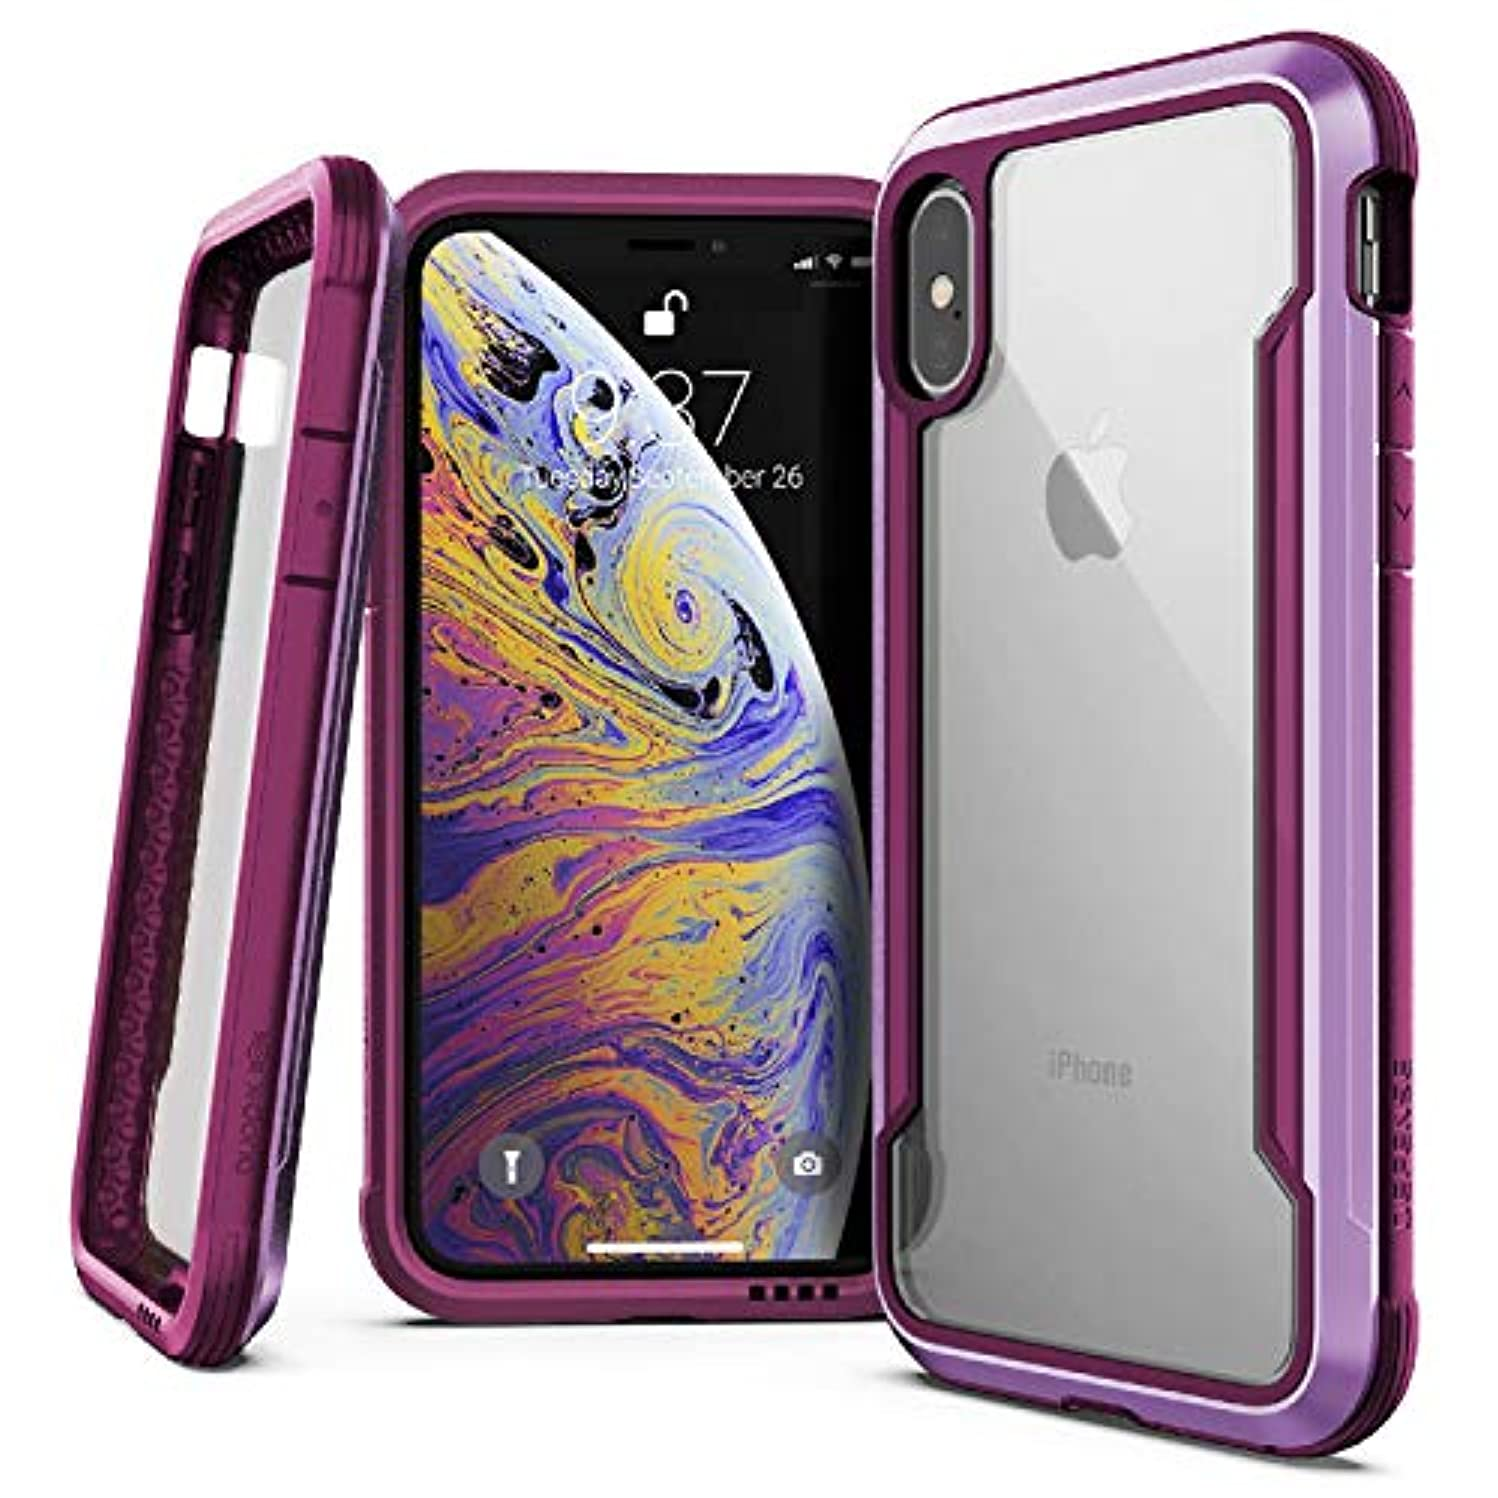 iPhone X, iPhone Xs Case, X-Doria Defense Shield Series - Military Grade Drop Tested, Anodized Aluminum, TPU, and Polycarbonate Protective Case for Apple iPhone X, iPhone Xs, iPhone 10 [Purple]